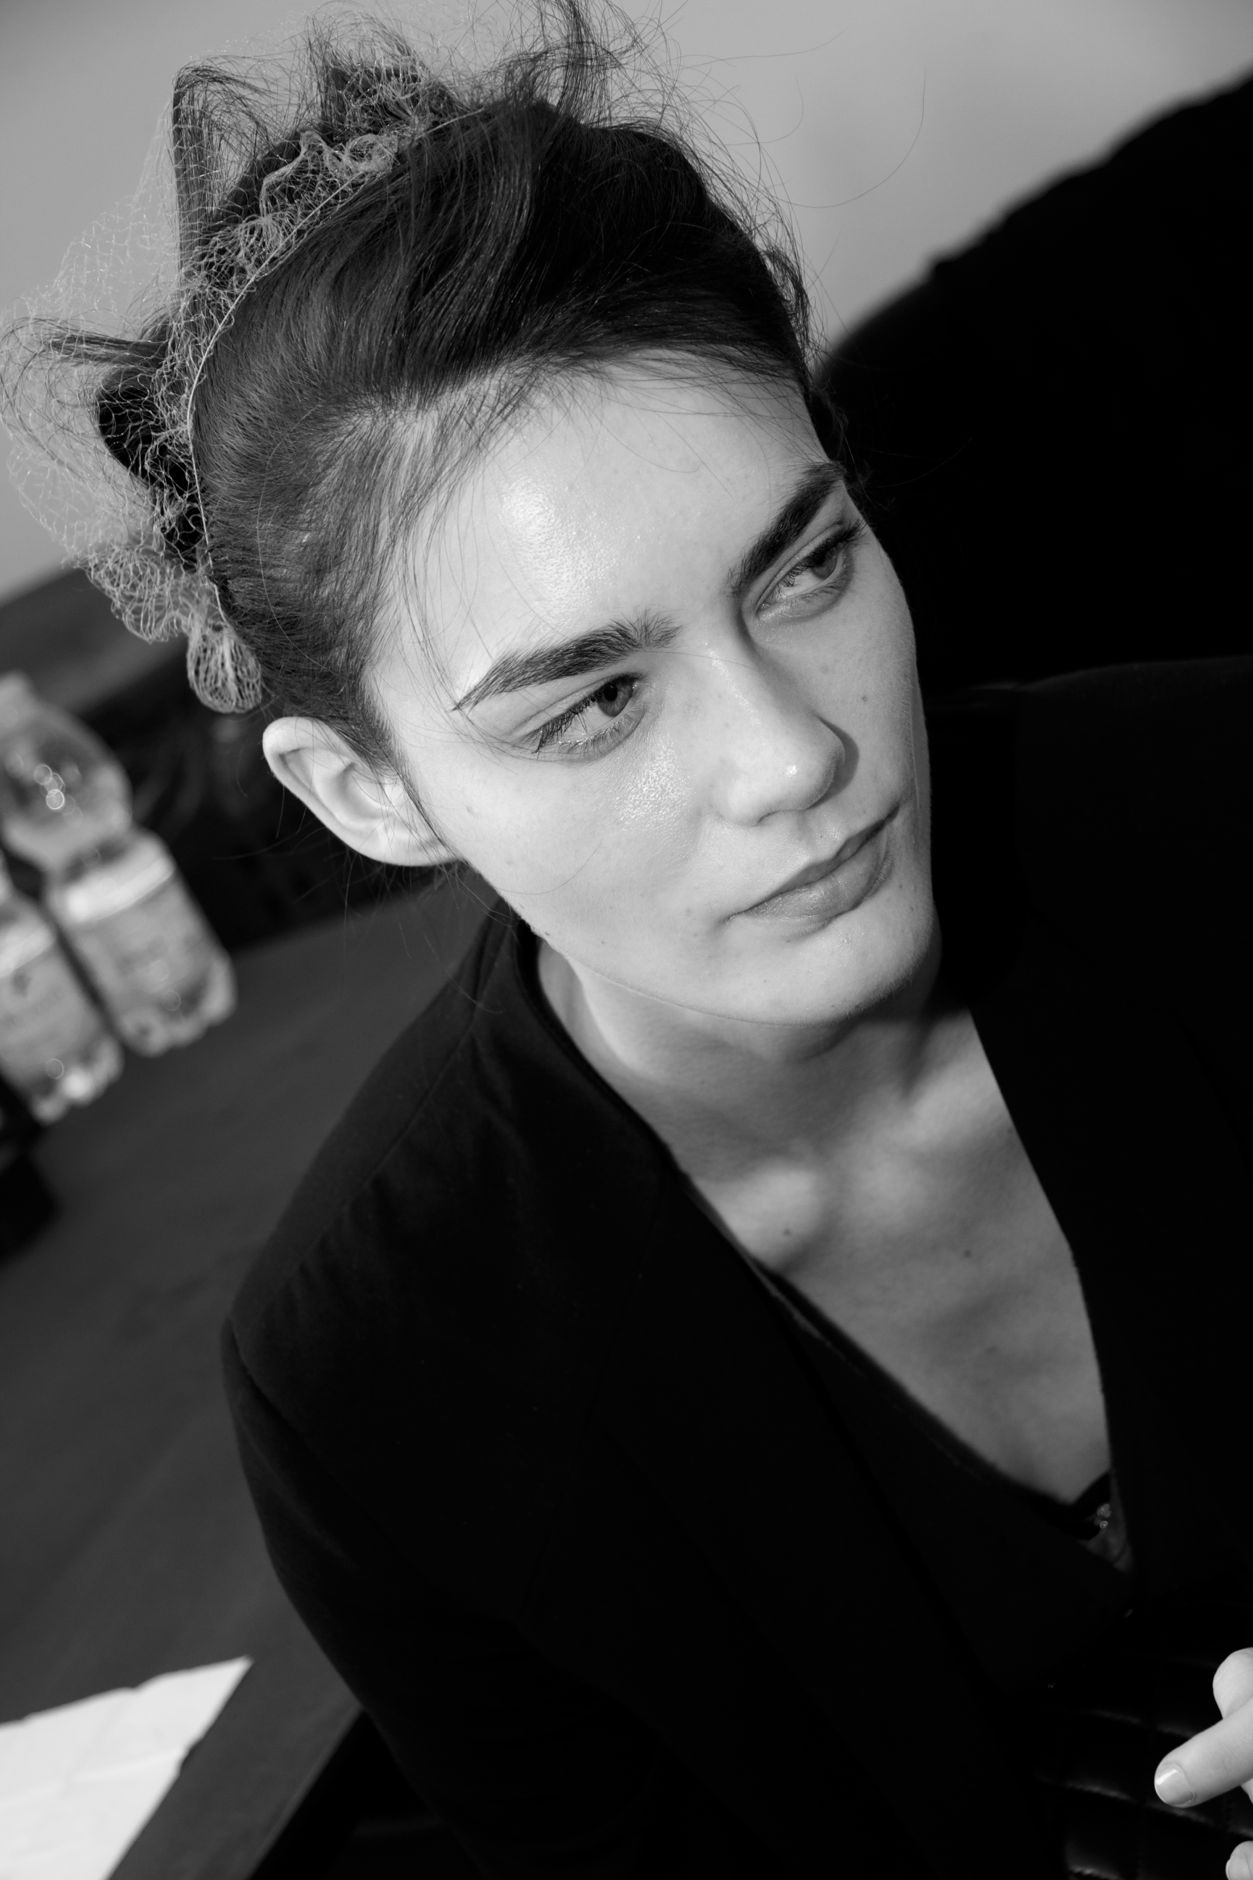 Backstage Jo No Fui SS 2013 Milan Fashion Week